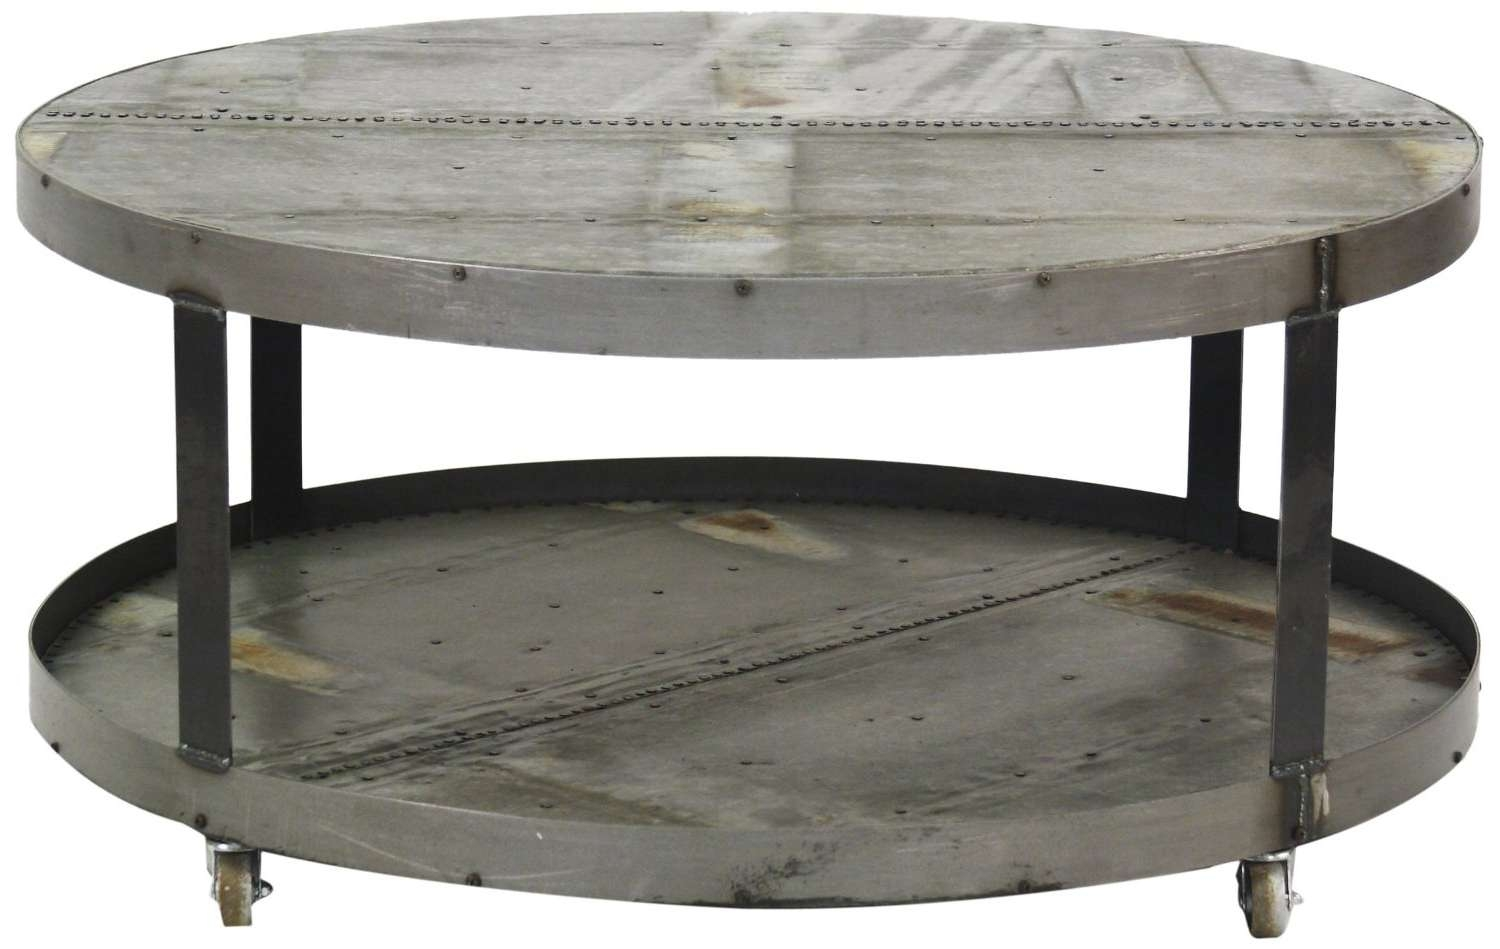 Metal Round Coffee Table Base Only Portable Round Metal Coffee Pertaining To Best And Newest Metal Round Coffee Tables (View 3 of 20)